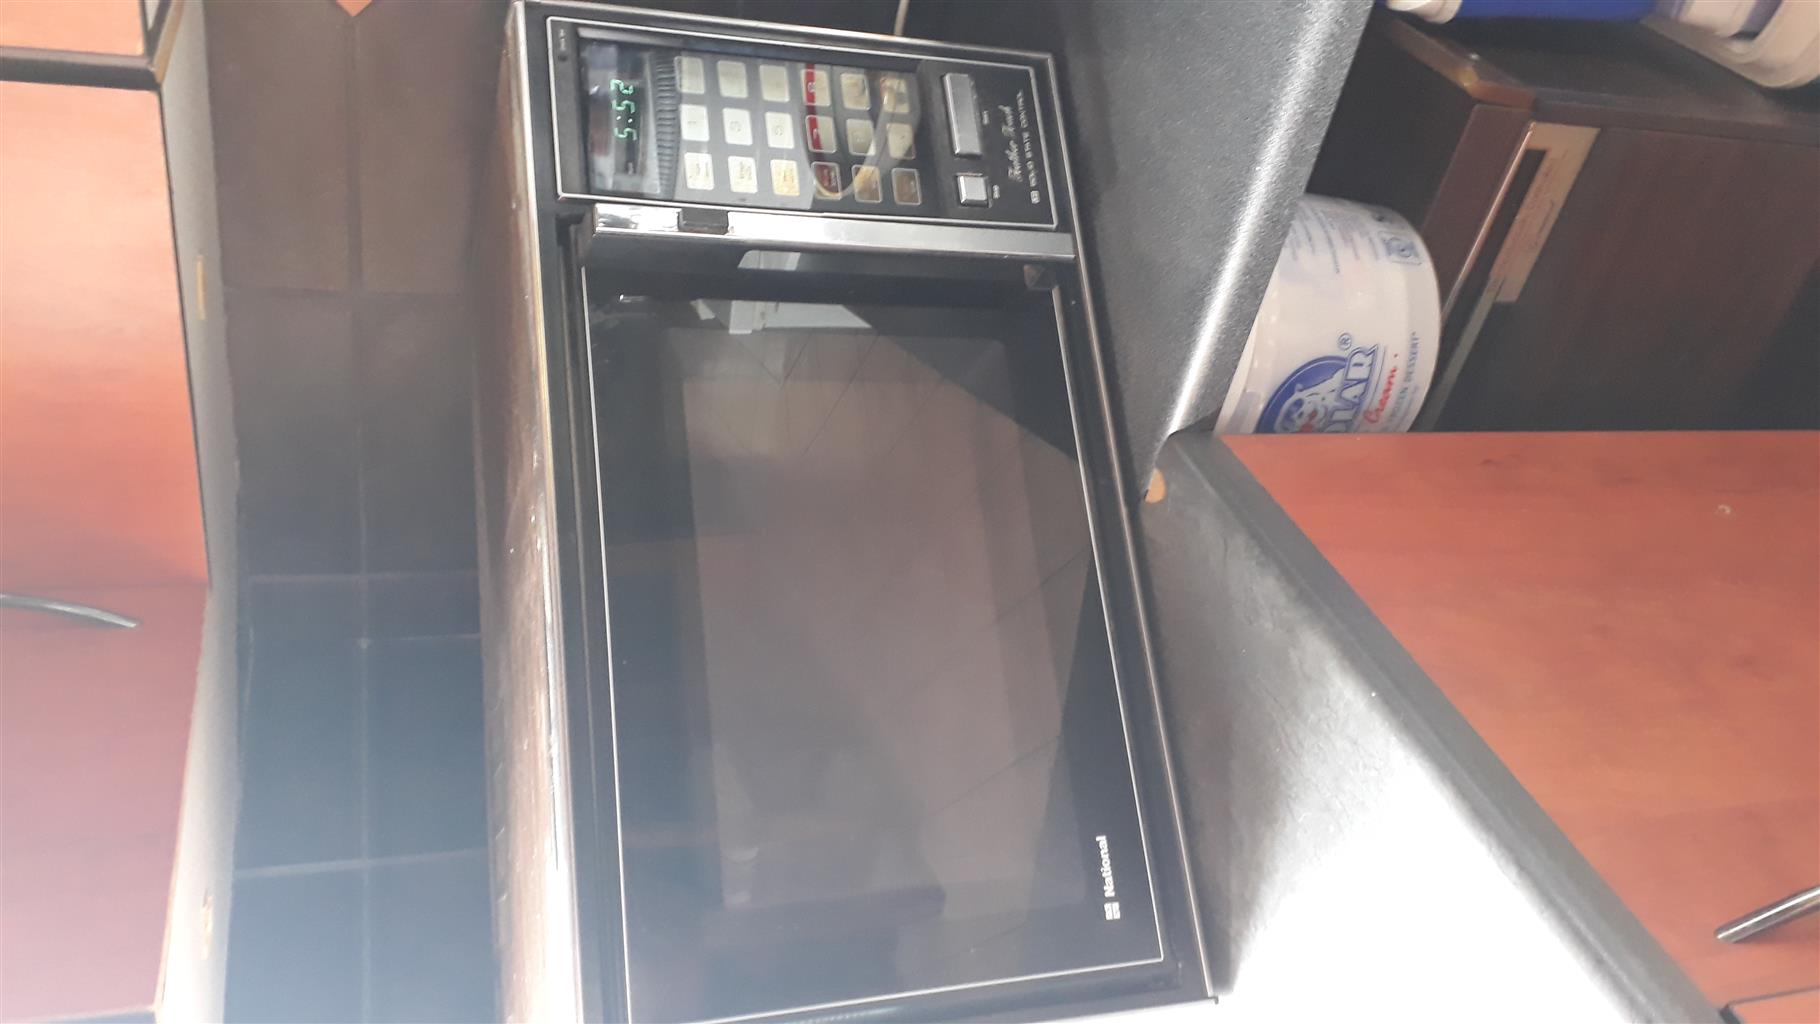 repair and service of microwaves